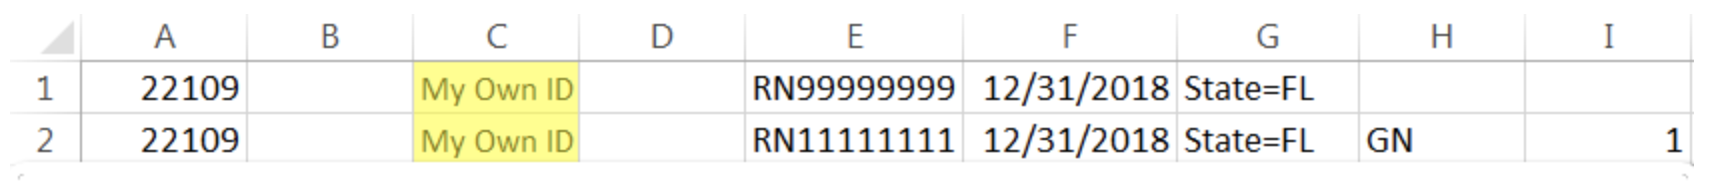 The same example roster with your own course ID in Column C. Column B is blank.